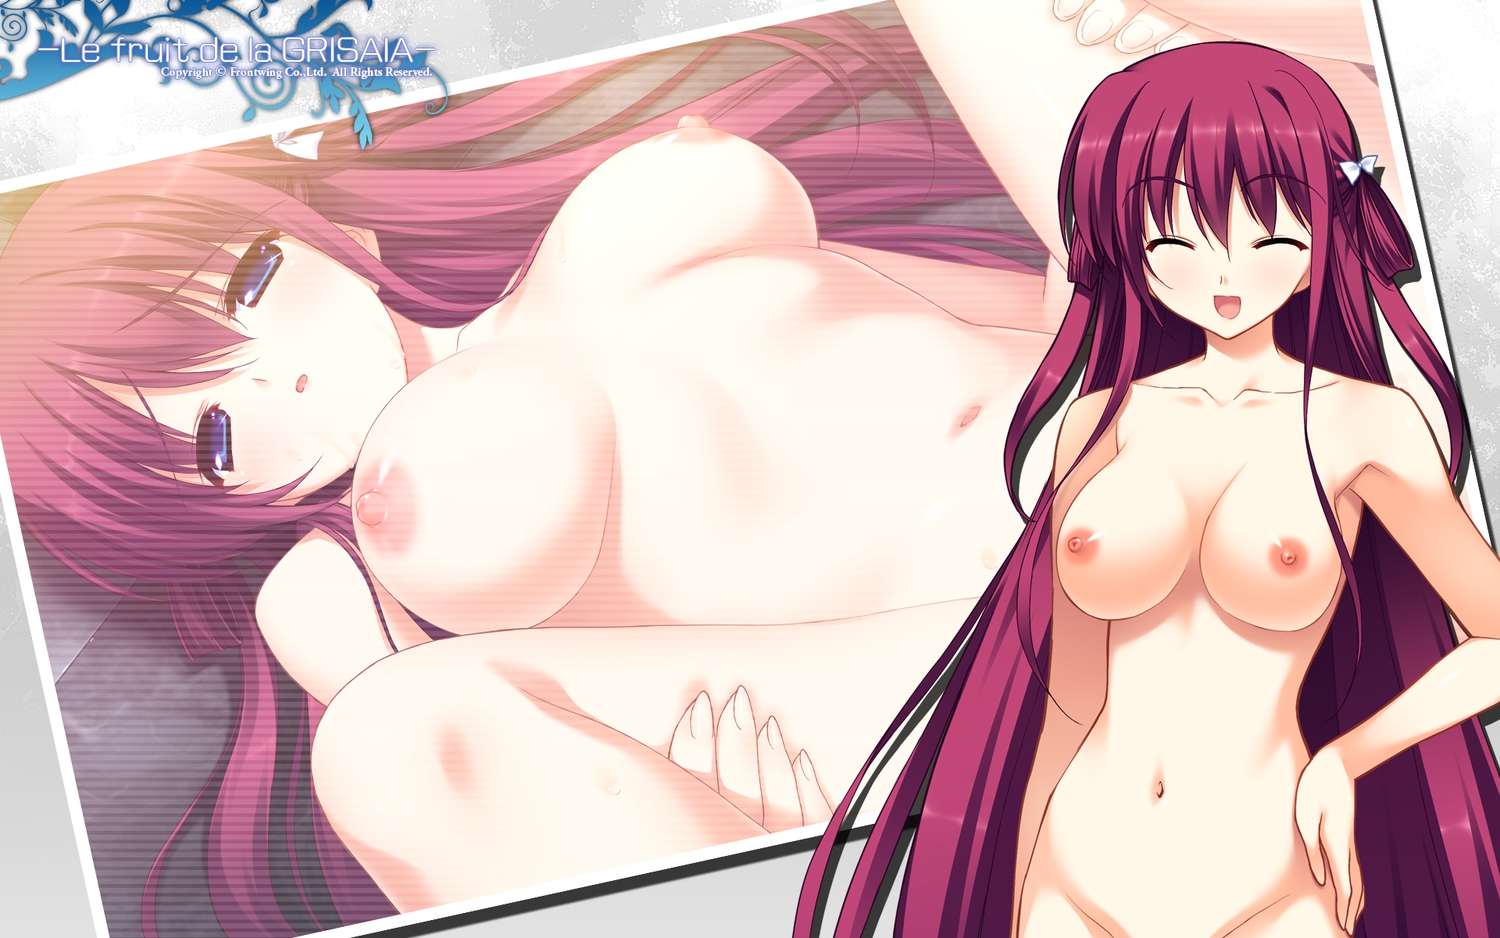 blue_eyes breasts front_wing fumio grisaia_no_kajitsu long_hair navel nipples nude red_hair suou_amane